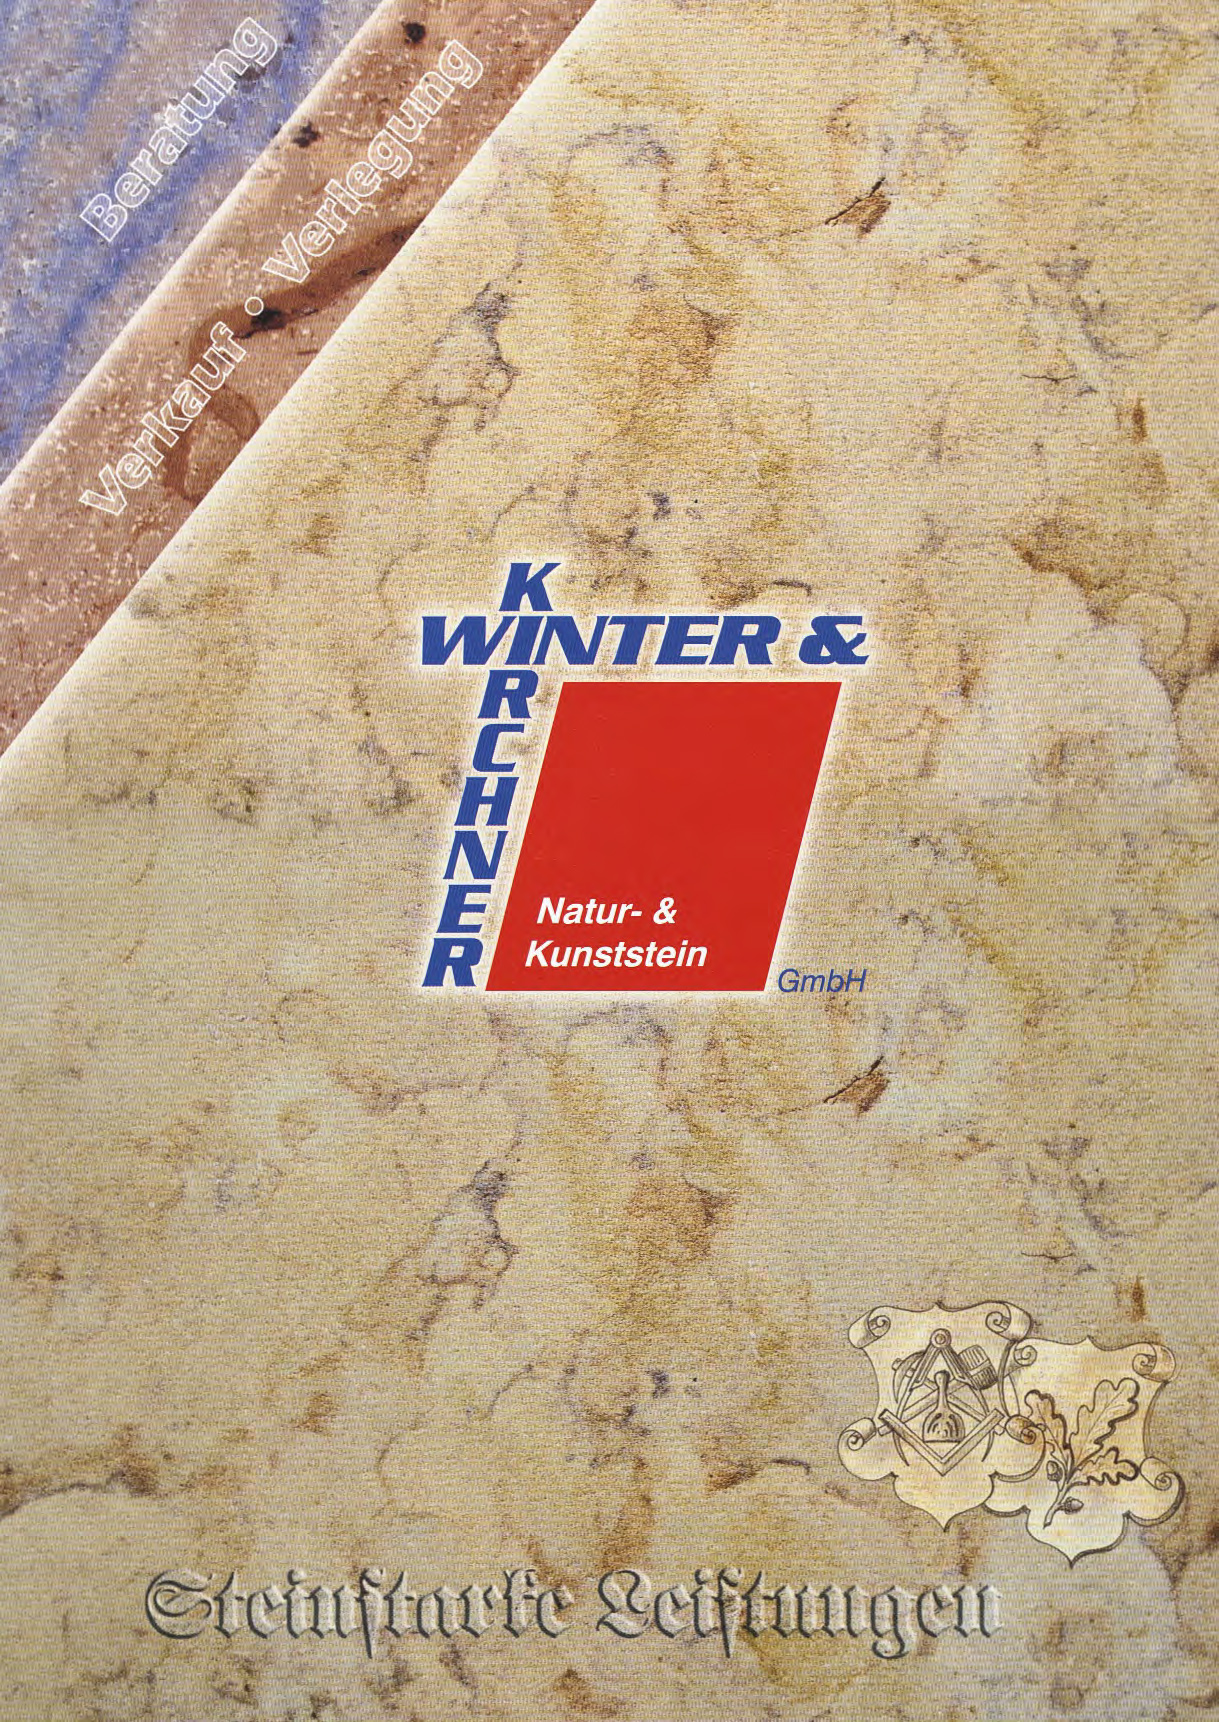 Winter & Kirchner Katalog